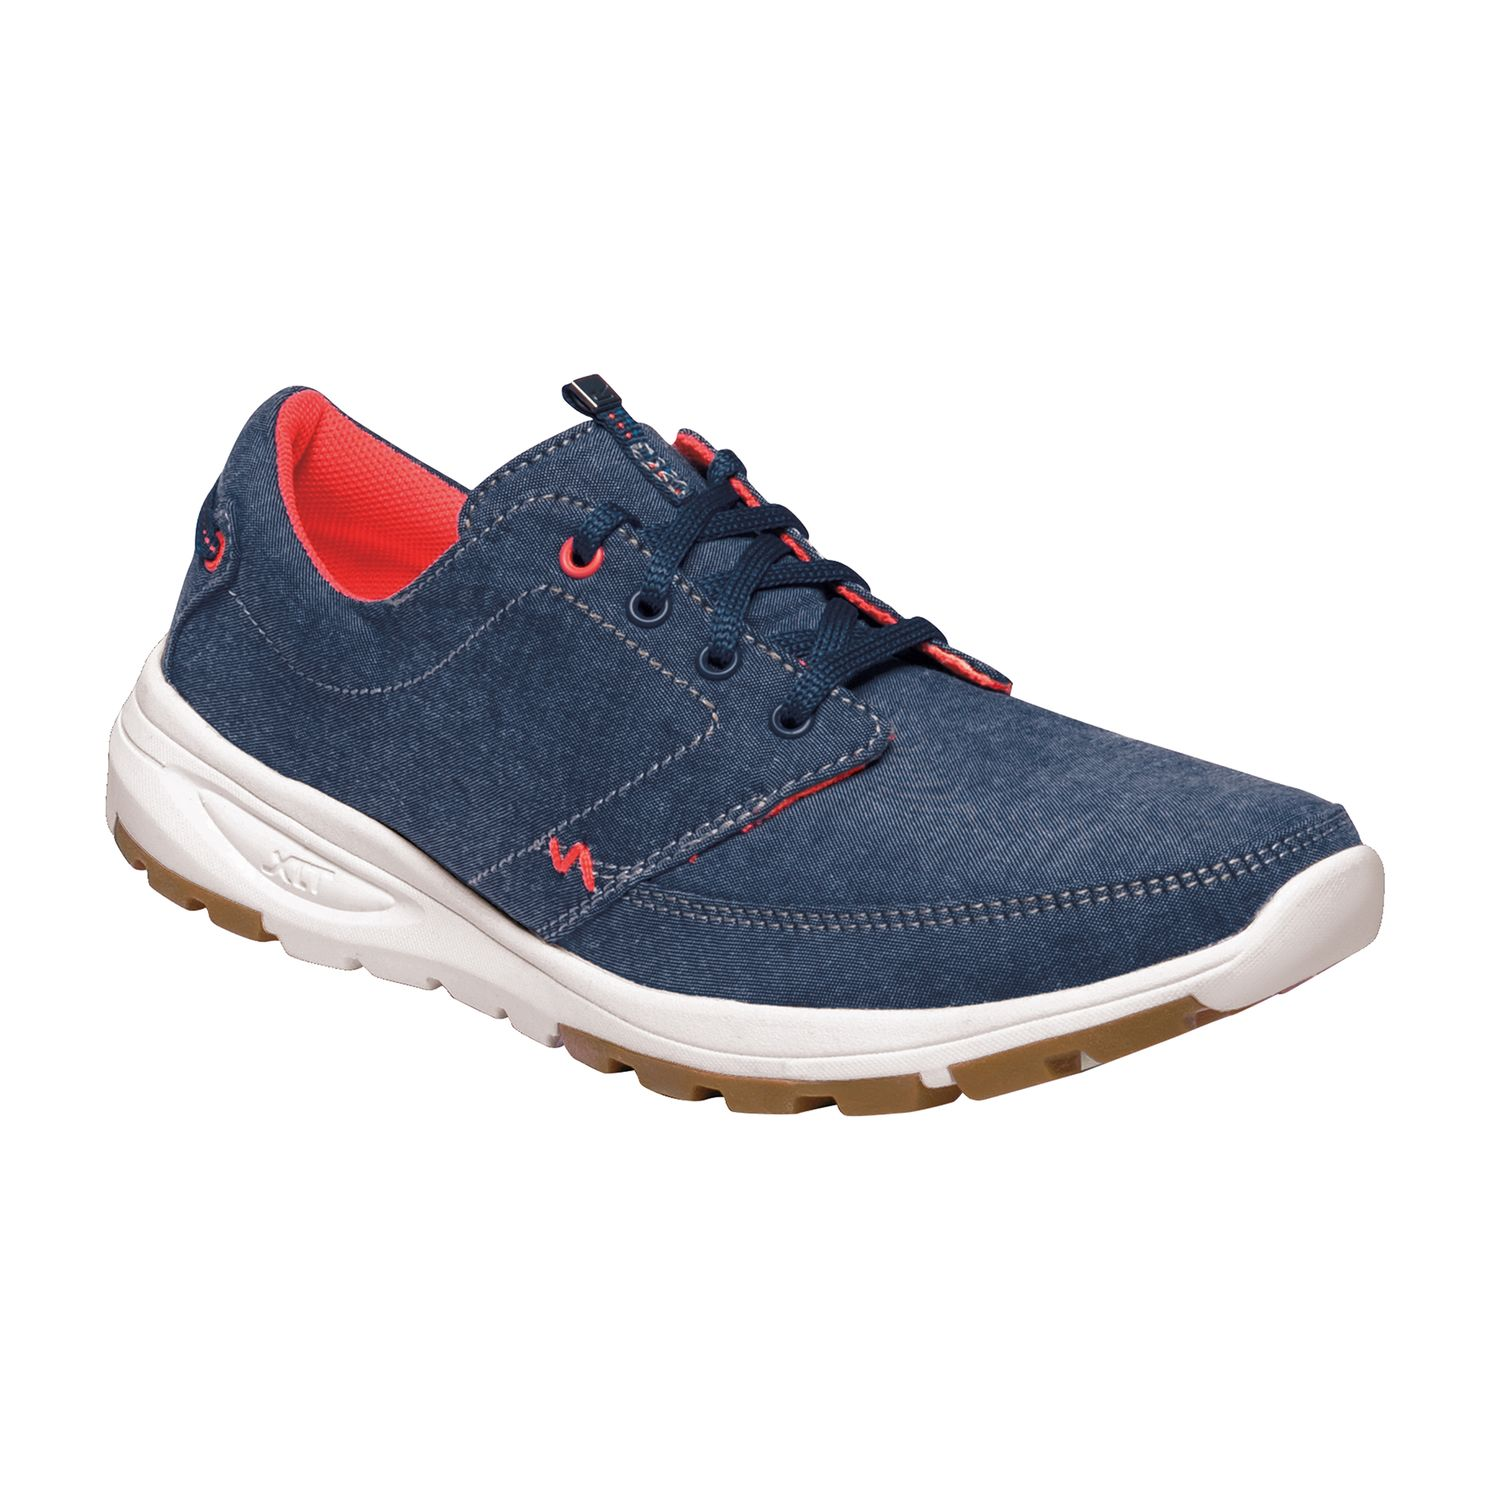 Women's blue trainer, with a white sole and red detailing.